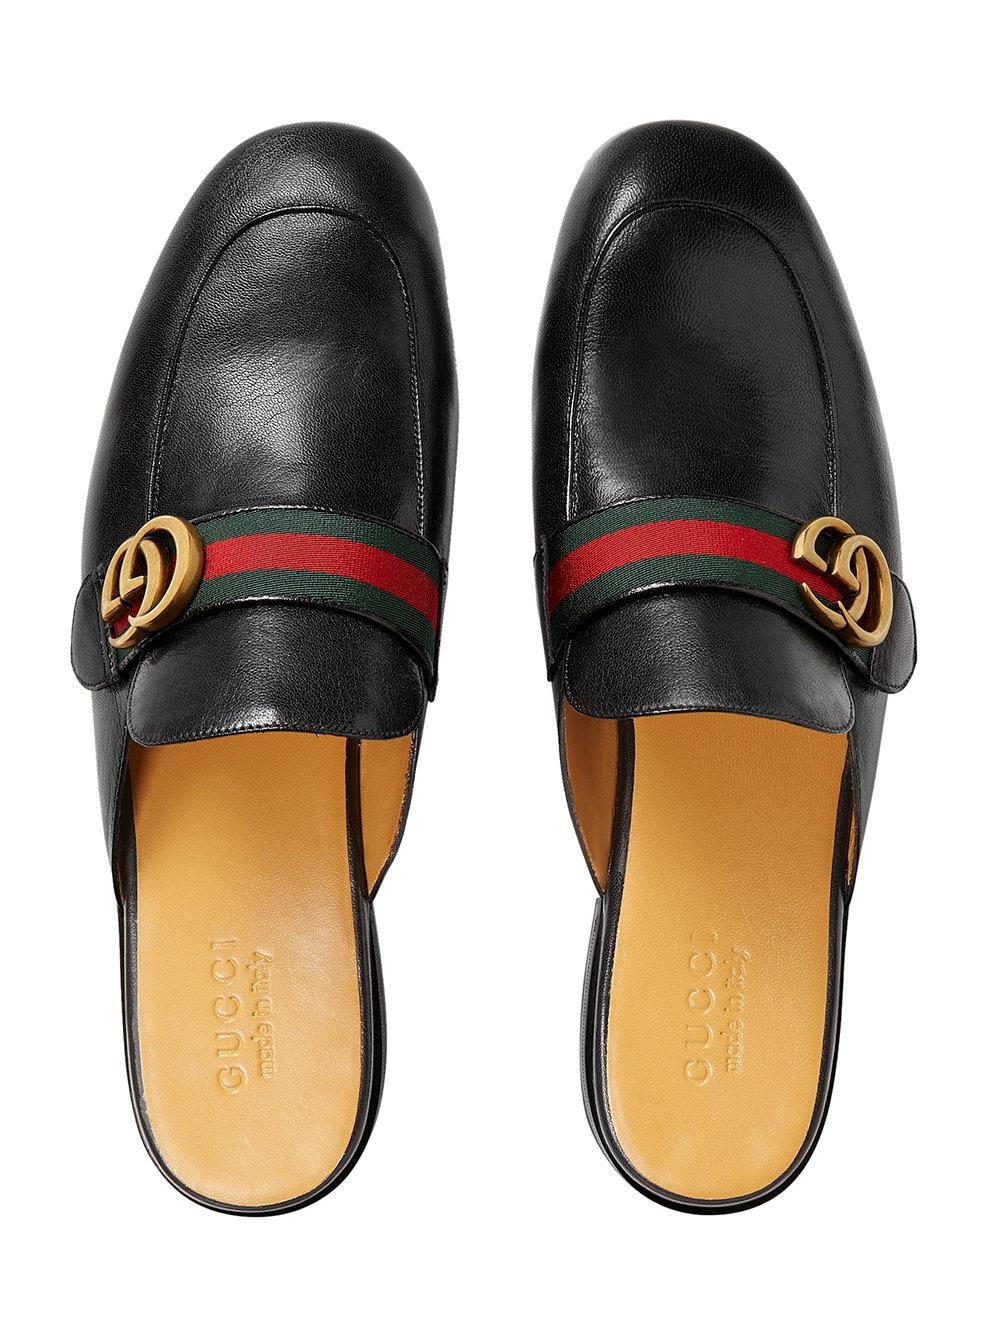 da20cf86abe Gucci - Black Princetown Leather Slipper With Double G for Men - Lyst. View  fullscreen